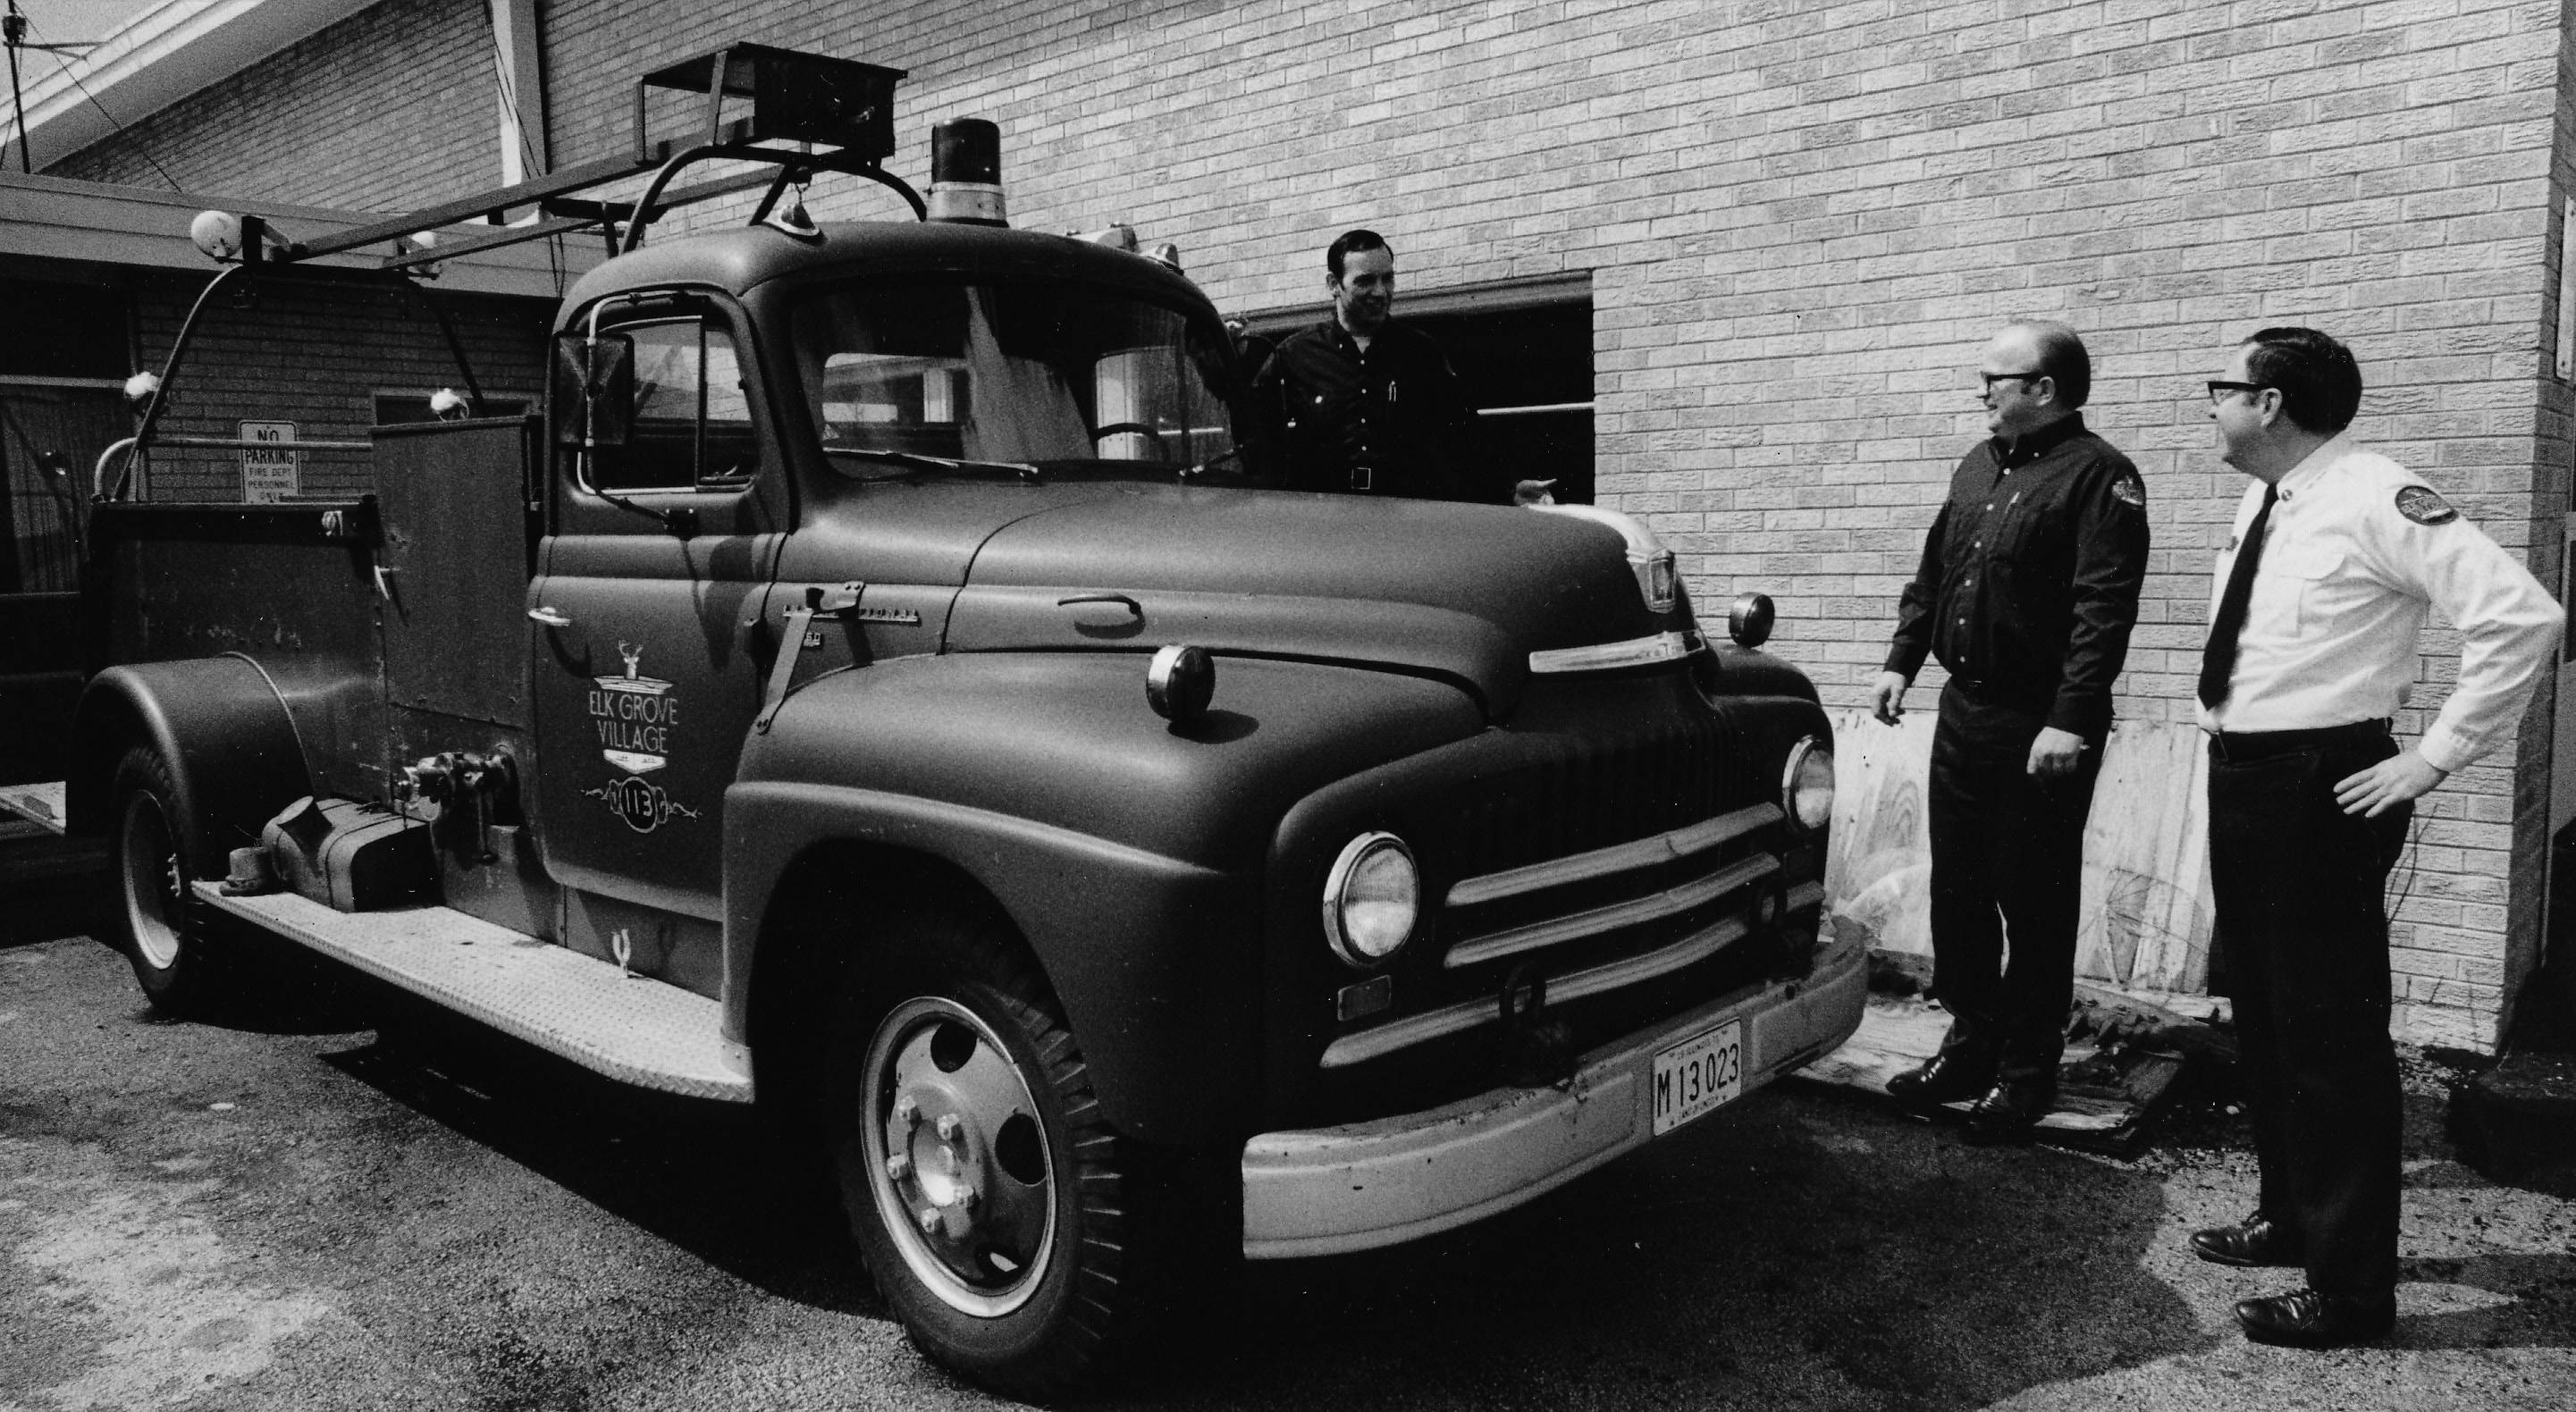 Elk Grove Village's first fire engine was being put up for sale after 12 years of service in 1973. The 1952 model engine was purchased secondhand from the U.S. Air Force fire department at O'Hare Airport. Looking at the truck are, from left, Firefighters Tom Casteron, Larry Novak and Lt. Fred Henning.